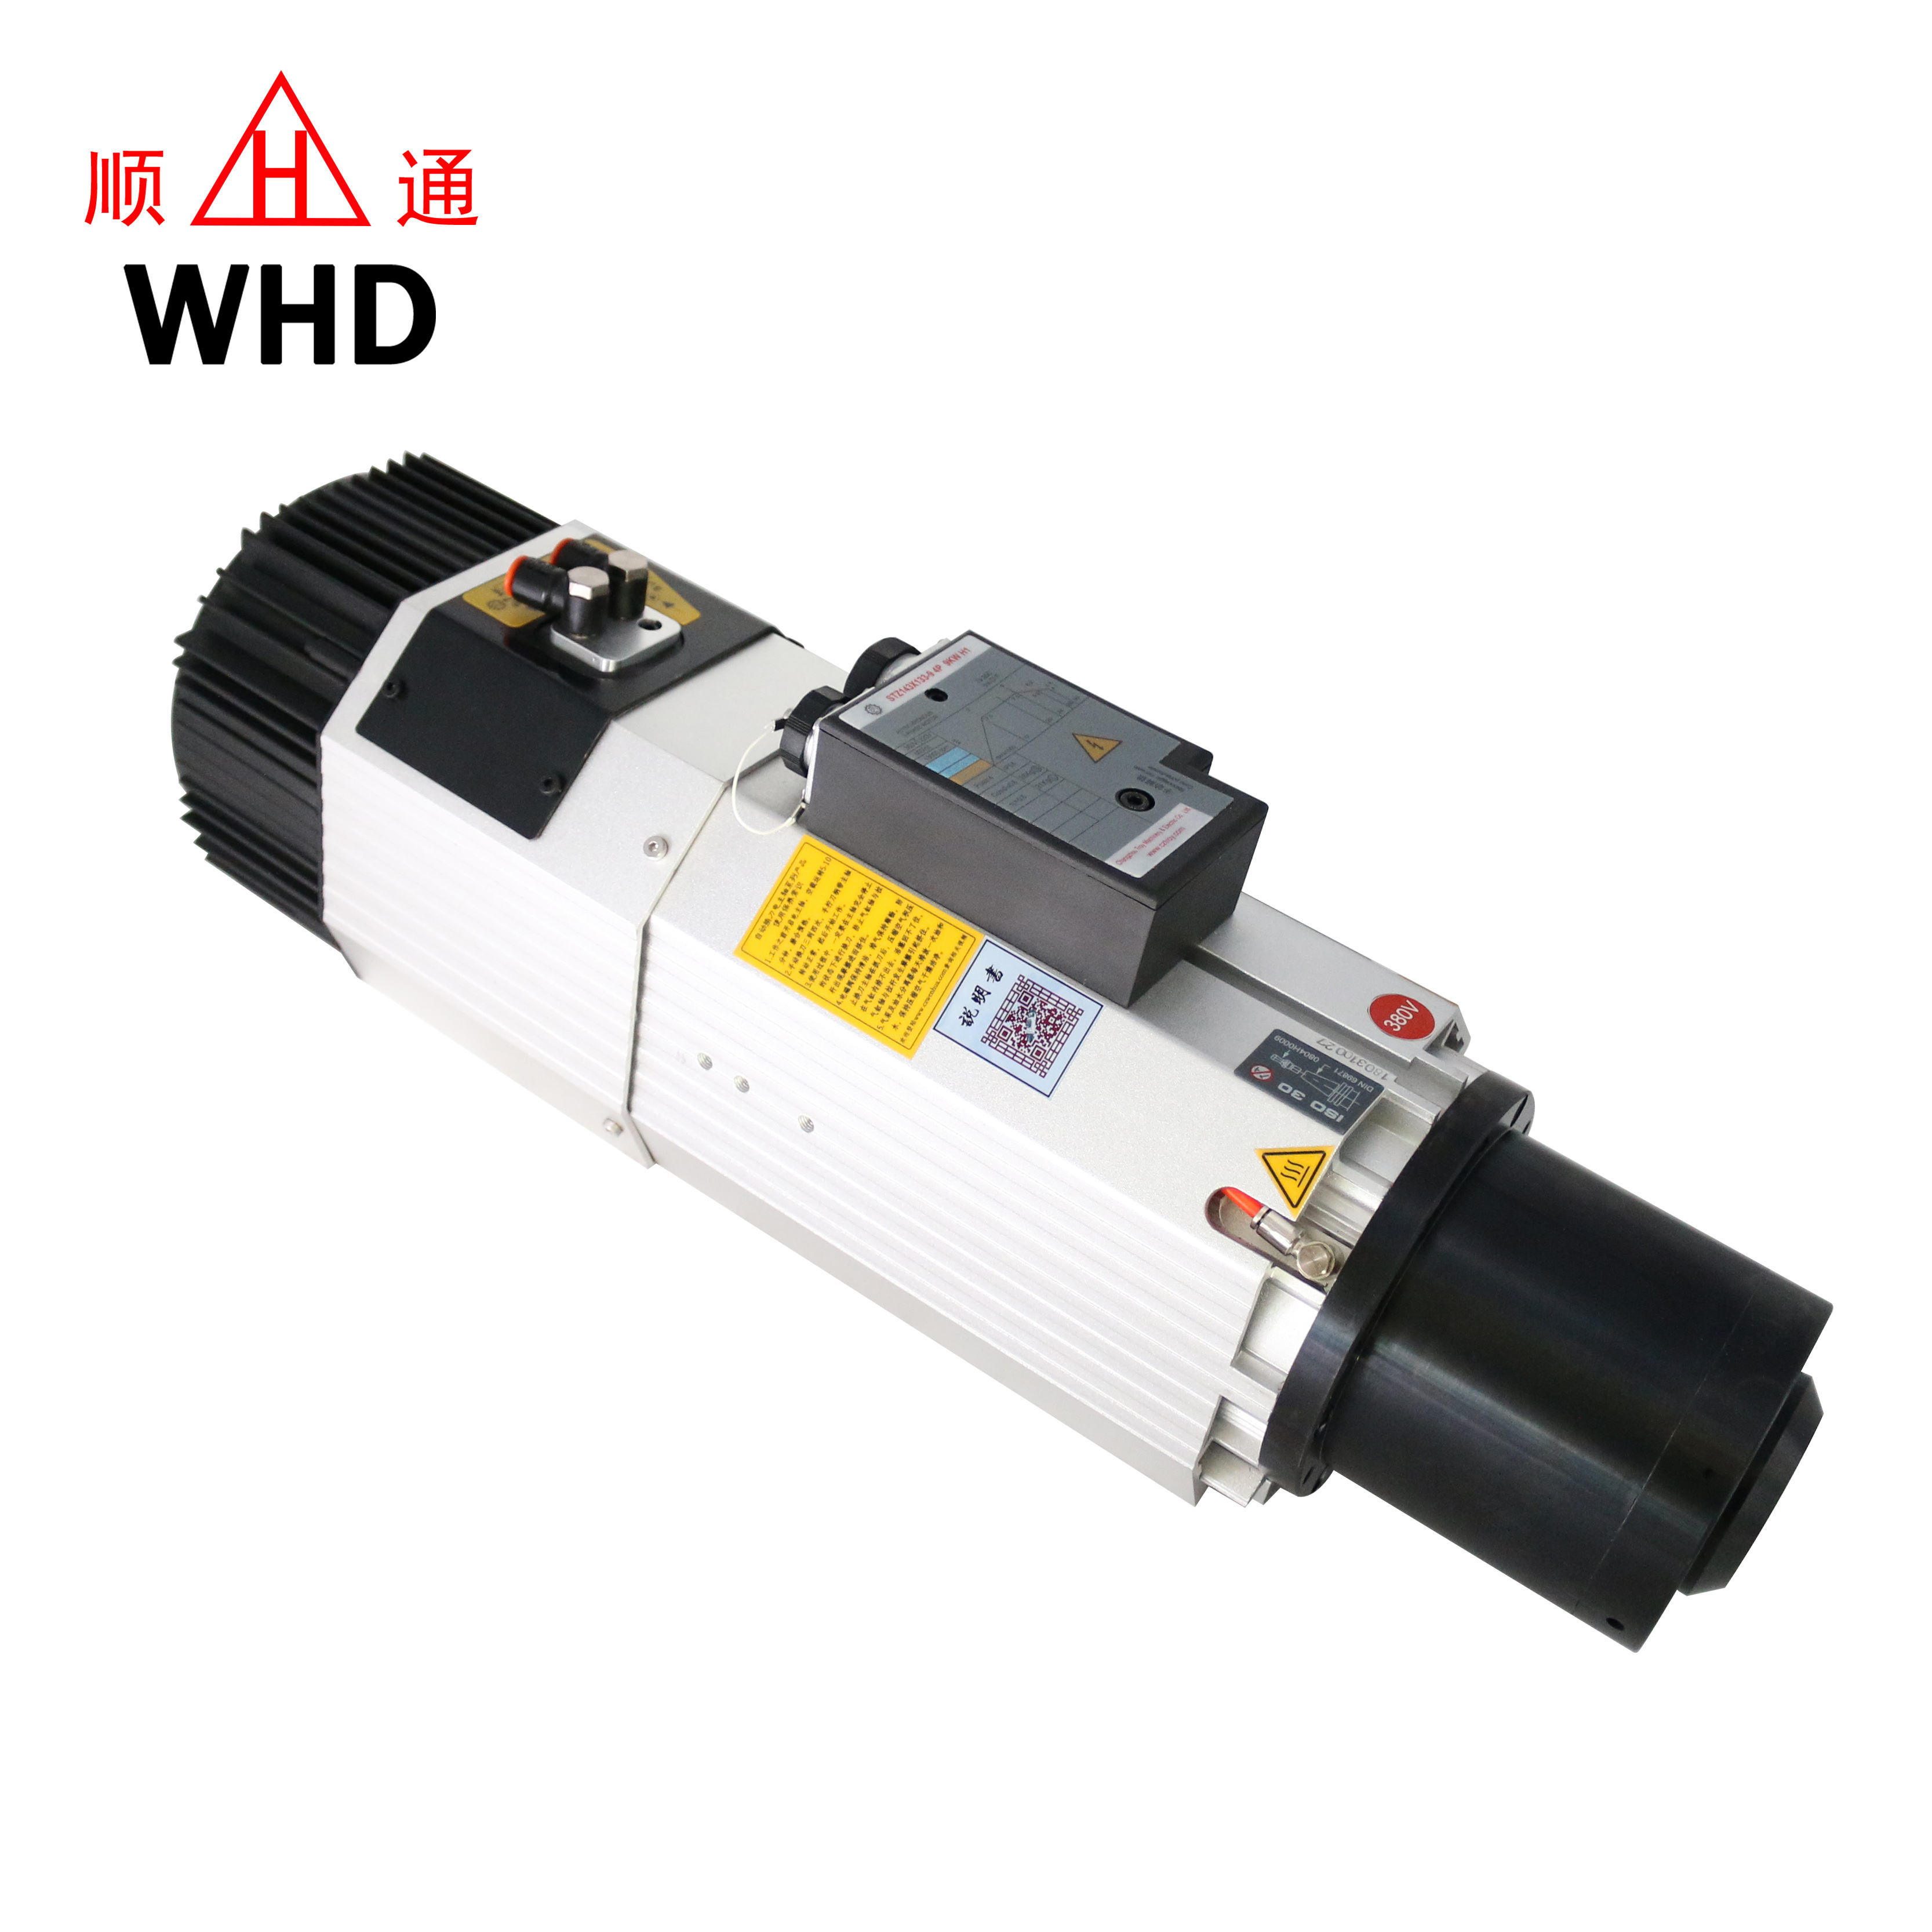 Automatic Tool Change ATC 9KW ISO30 24000RPM Air cooled CNC Spindle Motor